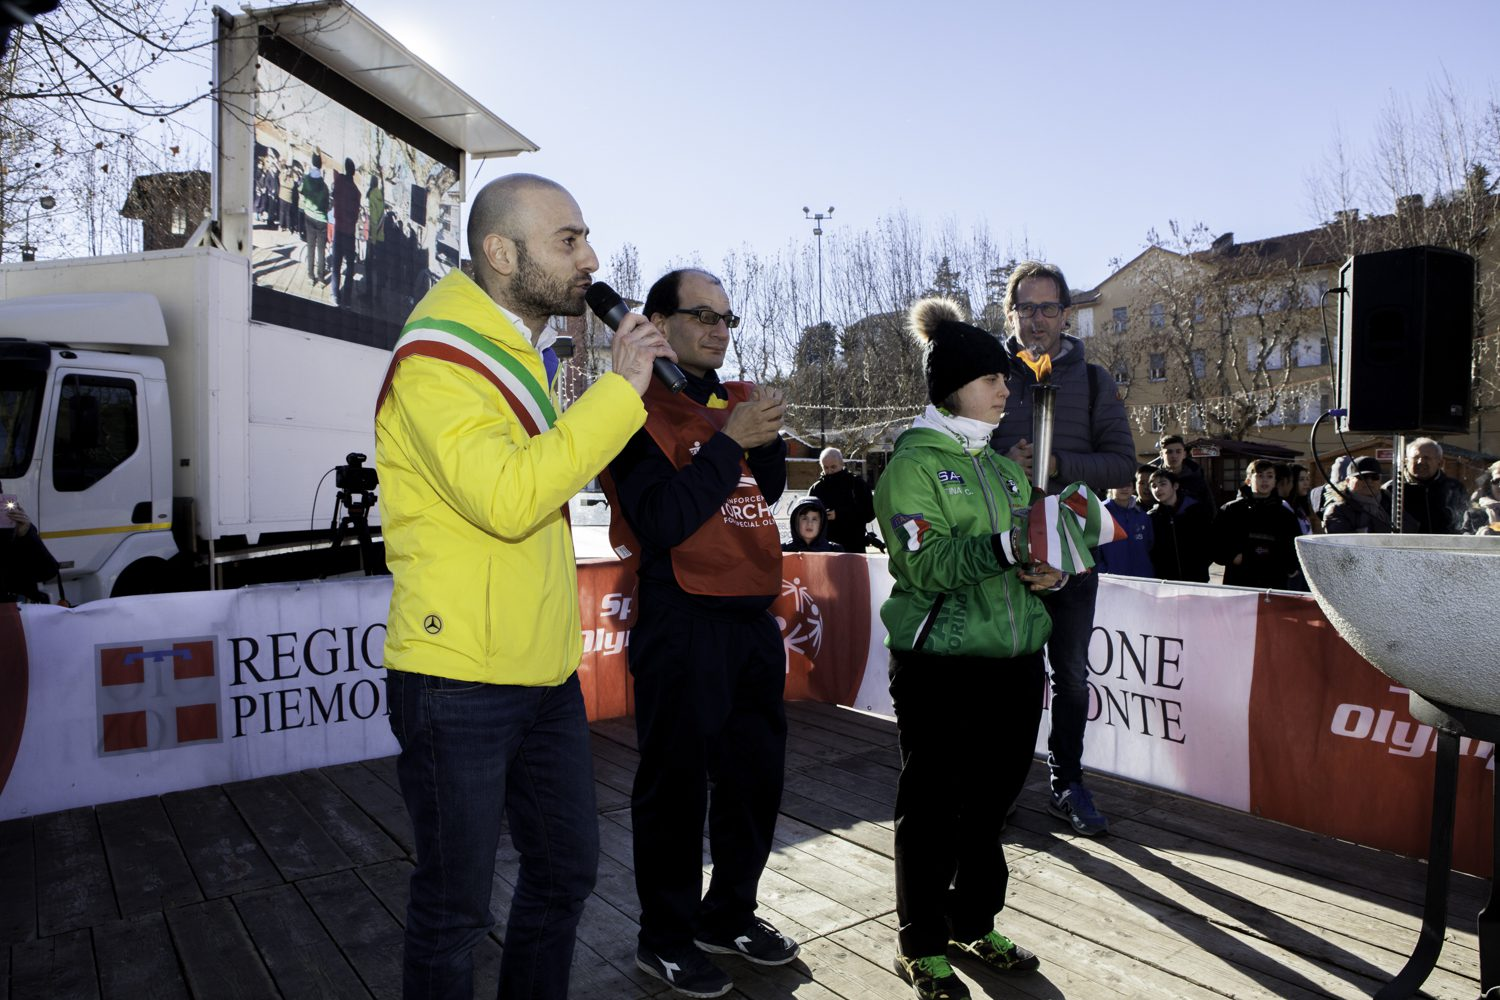 special_olympics2019_204.jpg?fit=1500%2C1000